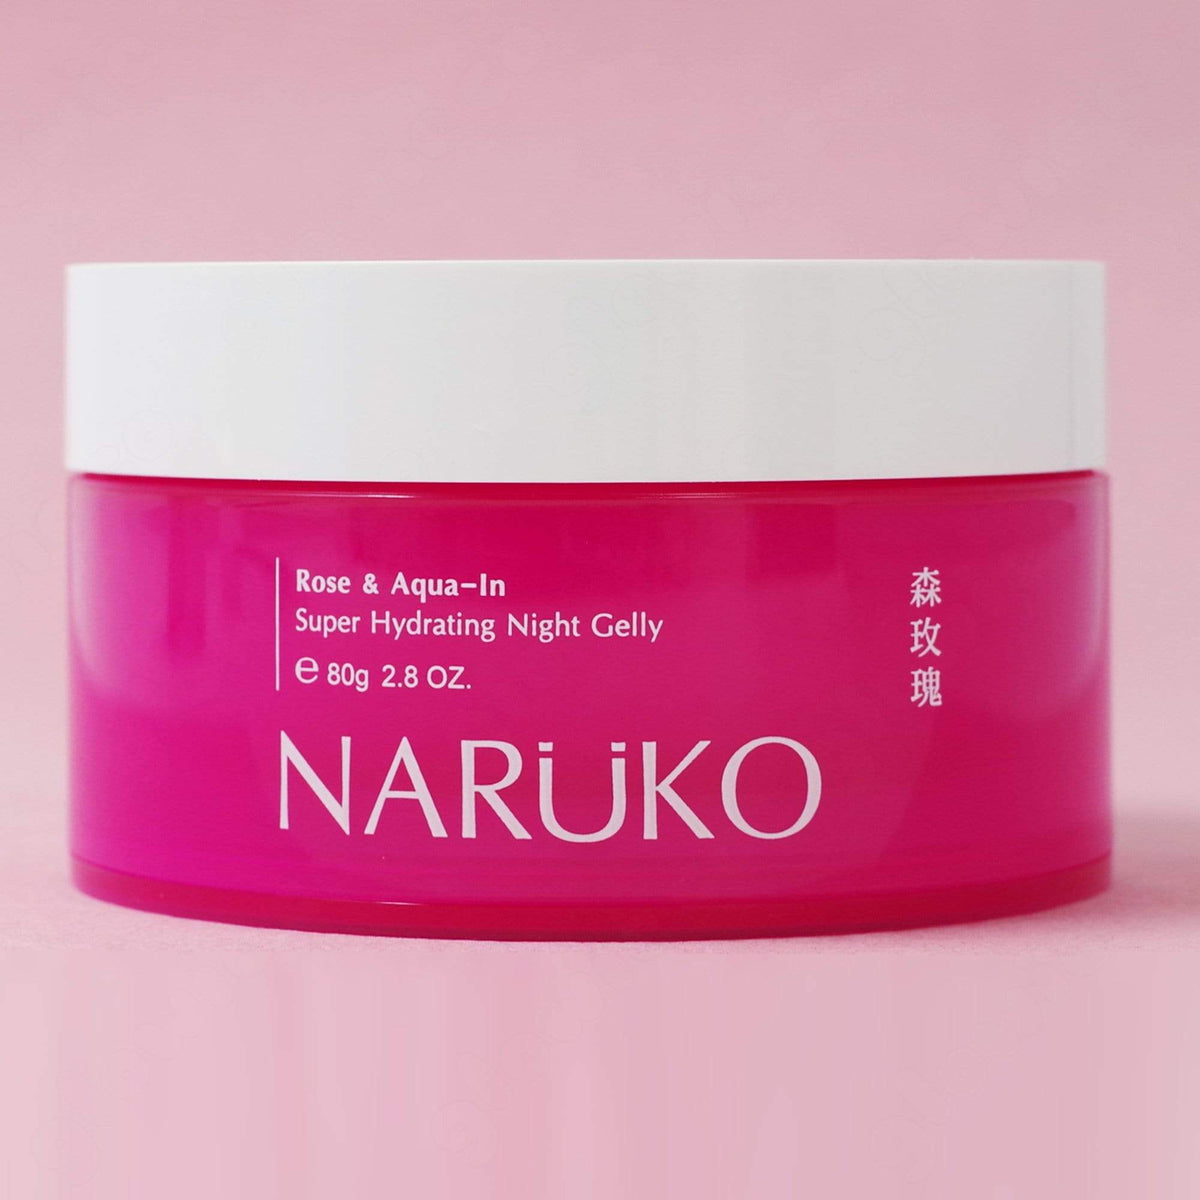 Naruko Rose & Aqua-In Super Hydrating Night Gelly